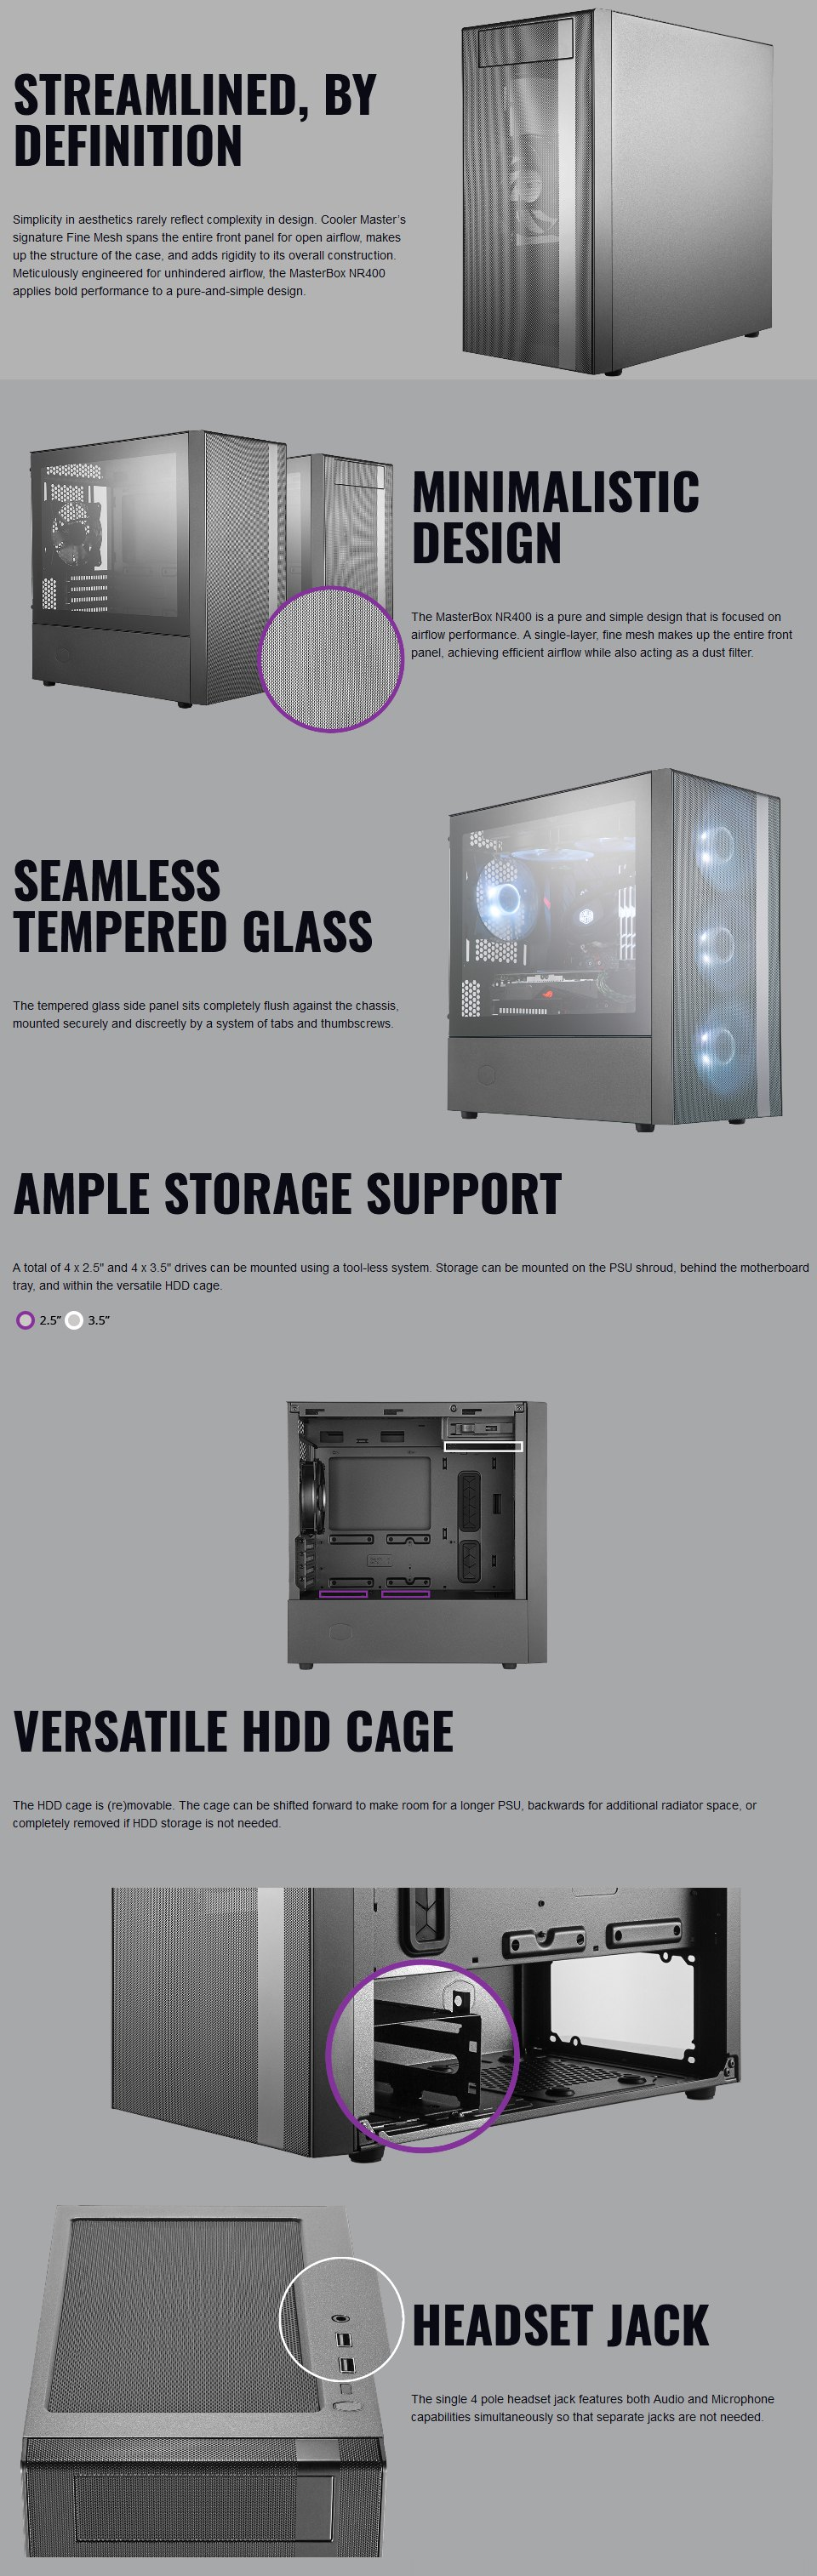 Cooler Master MasterBox NR400 Tempered Glass Case with ODD features